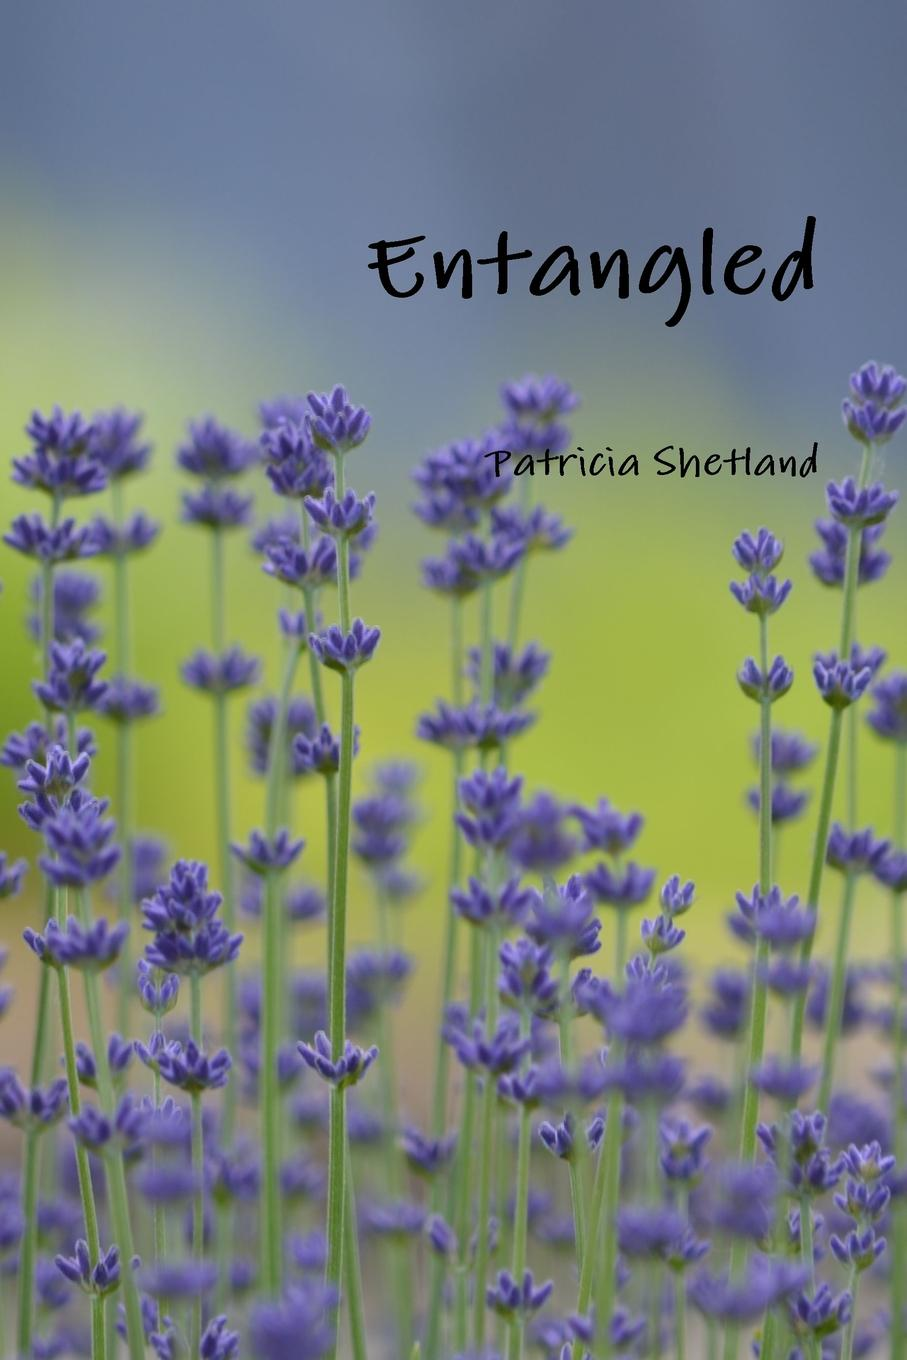 Patricia Shetland Entangled chloe seager editing emma online you can choose who you want to be if only real life were so easy